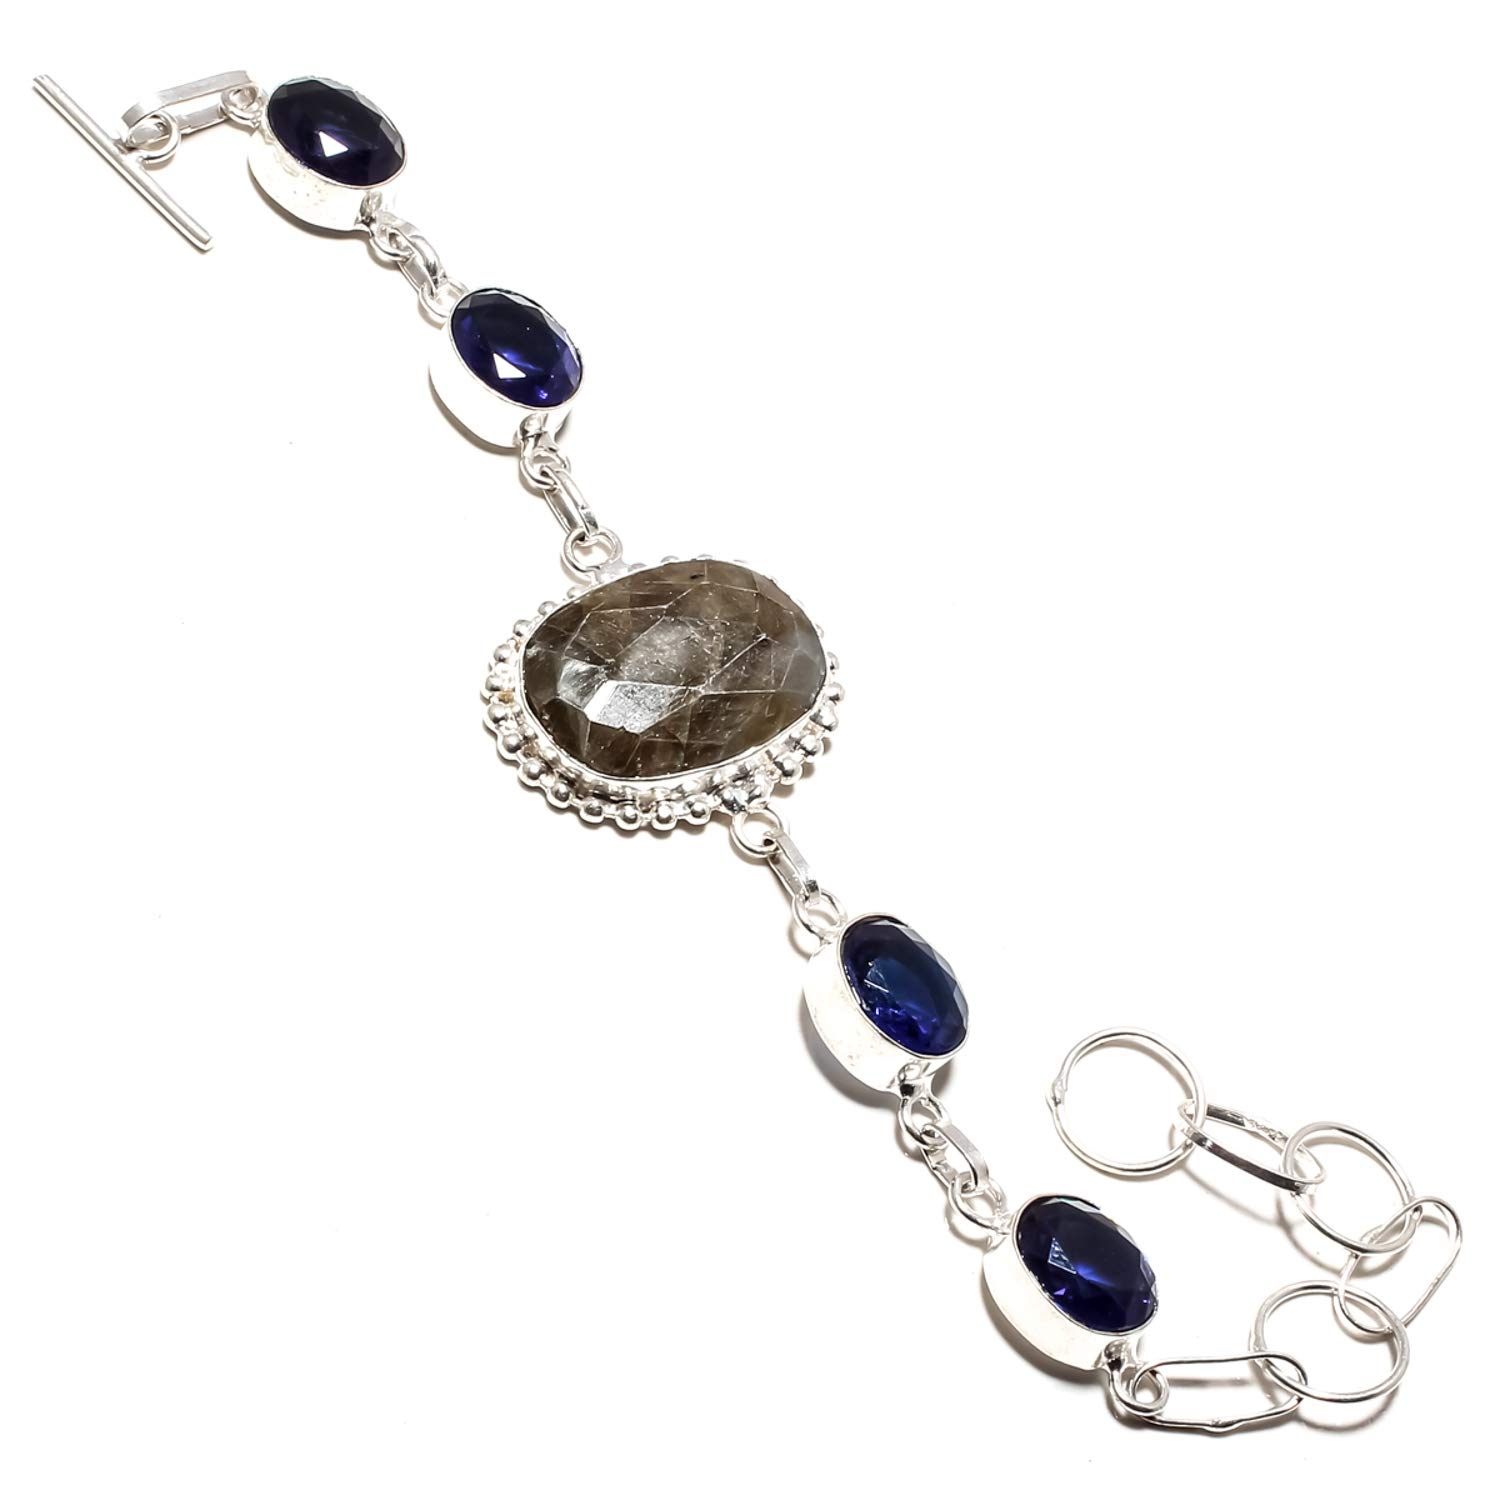 SF-1260 Gorgeous Faceted Labradorite /& Blue Sapphire Gemstone Bracelet Handmade 925 Sterling Silver Plated Jewelry Adjustable and Flexible Length-Link Chain Bracelet